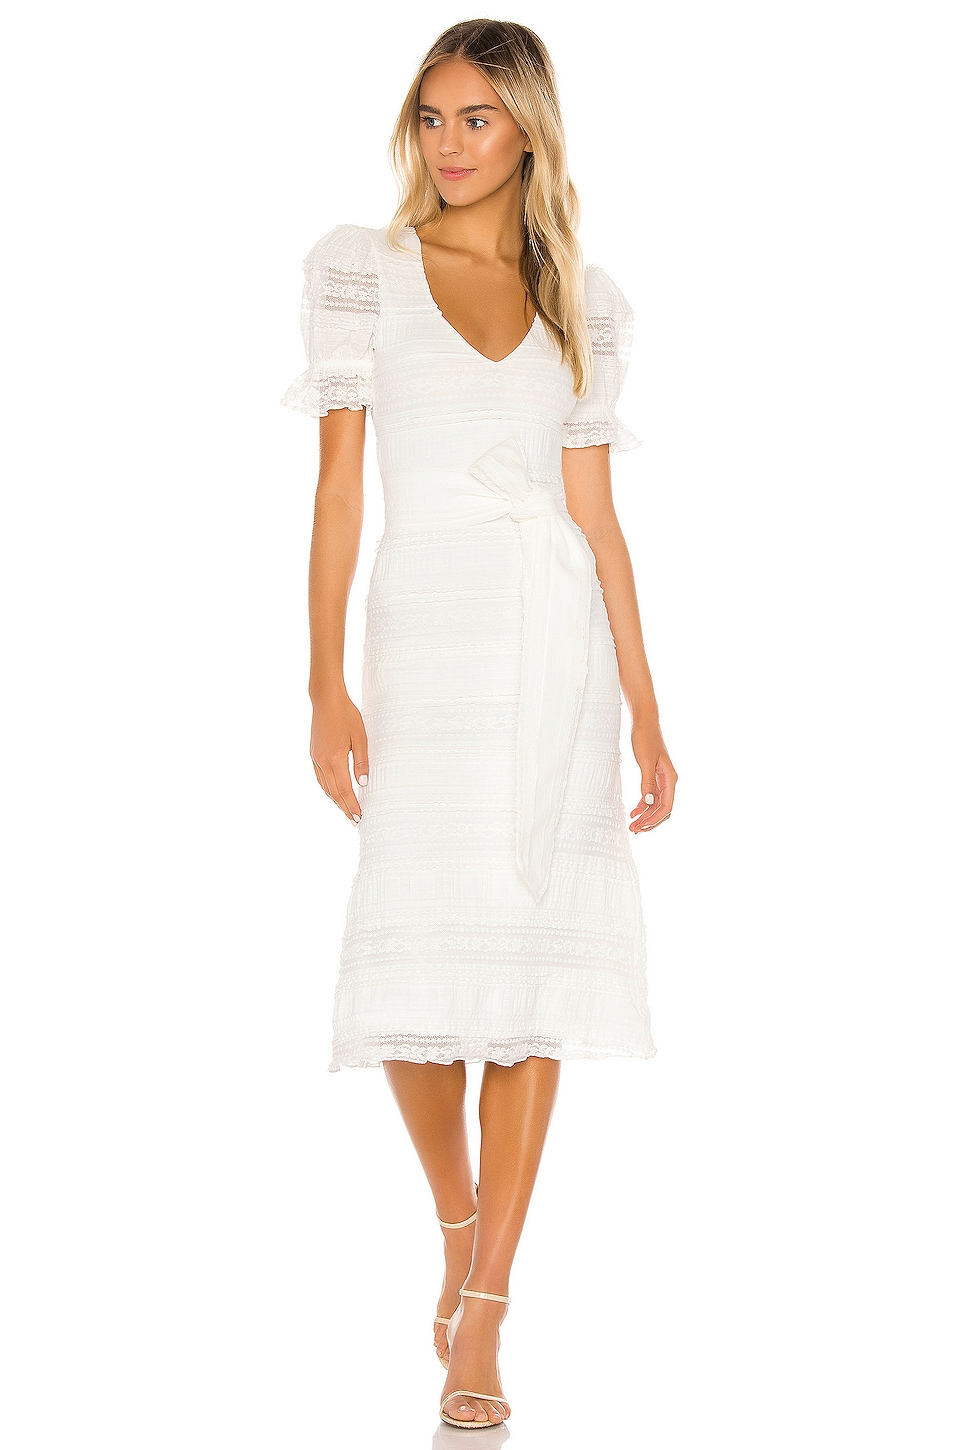 Quinn Midi Dress             Tularosa                                                                                                       CA$ 235.91 16